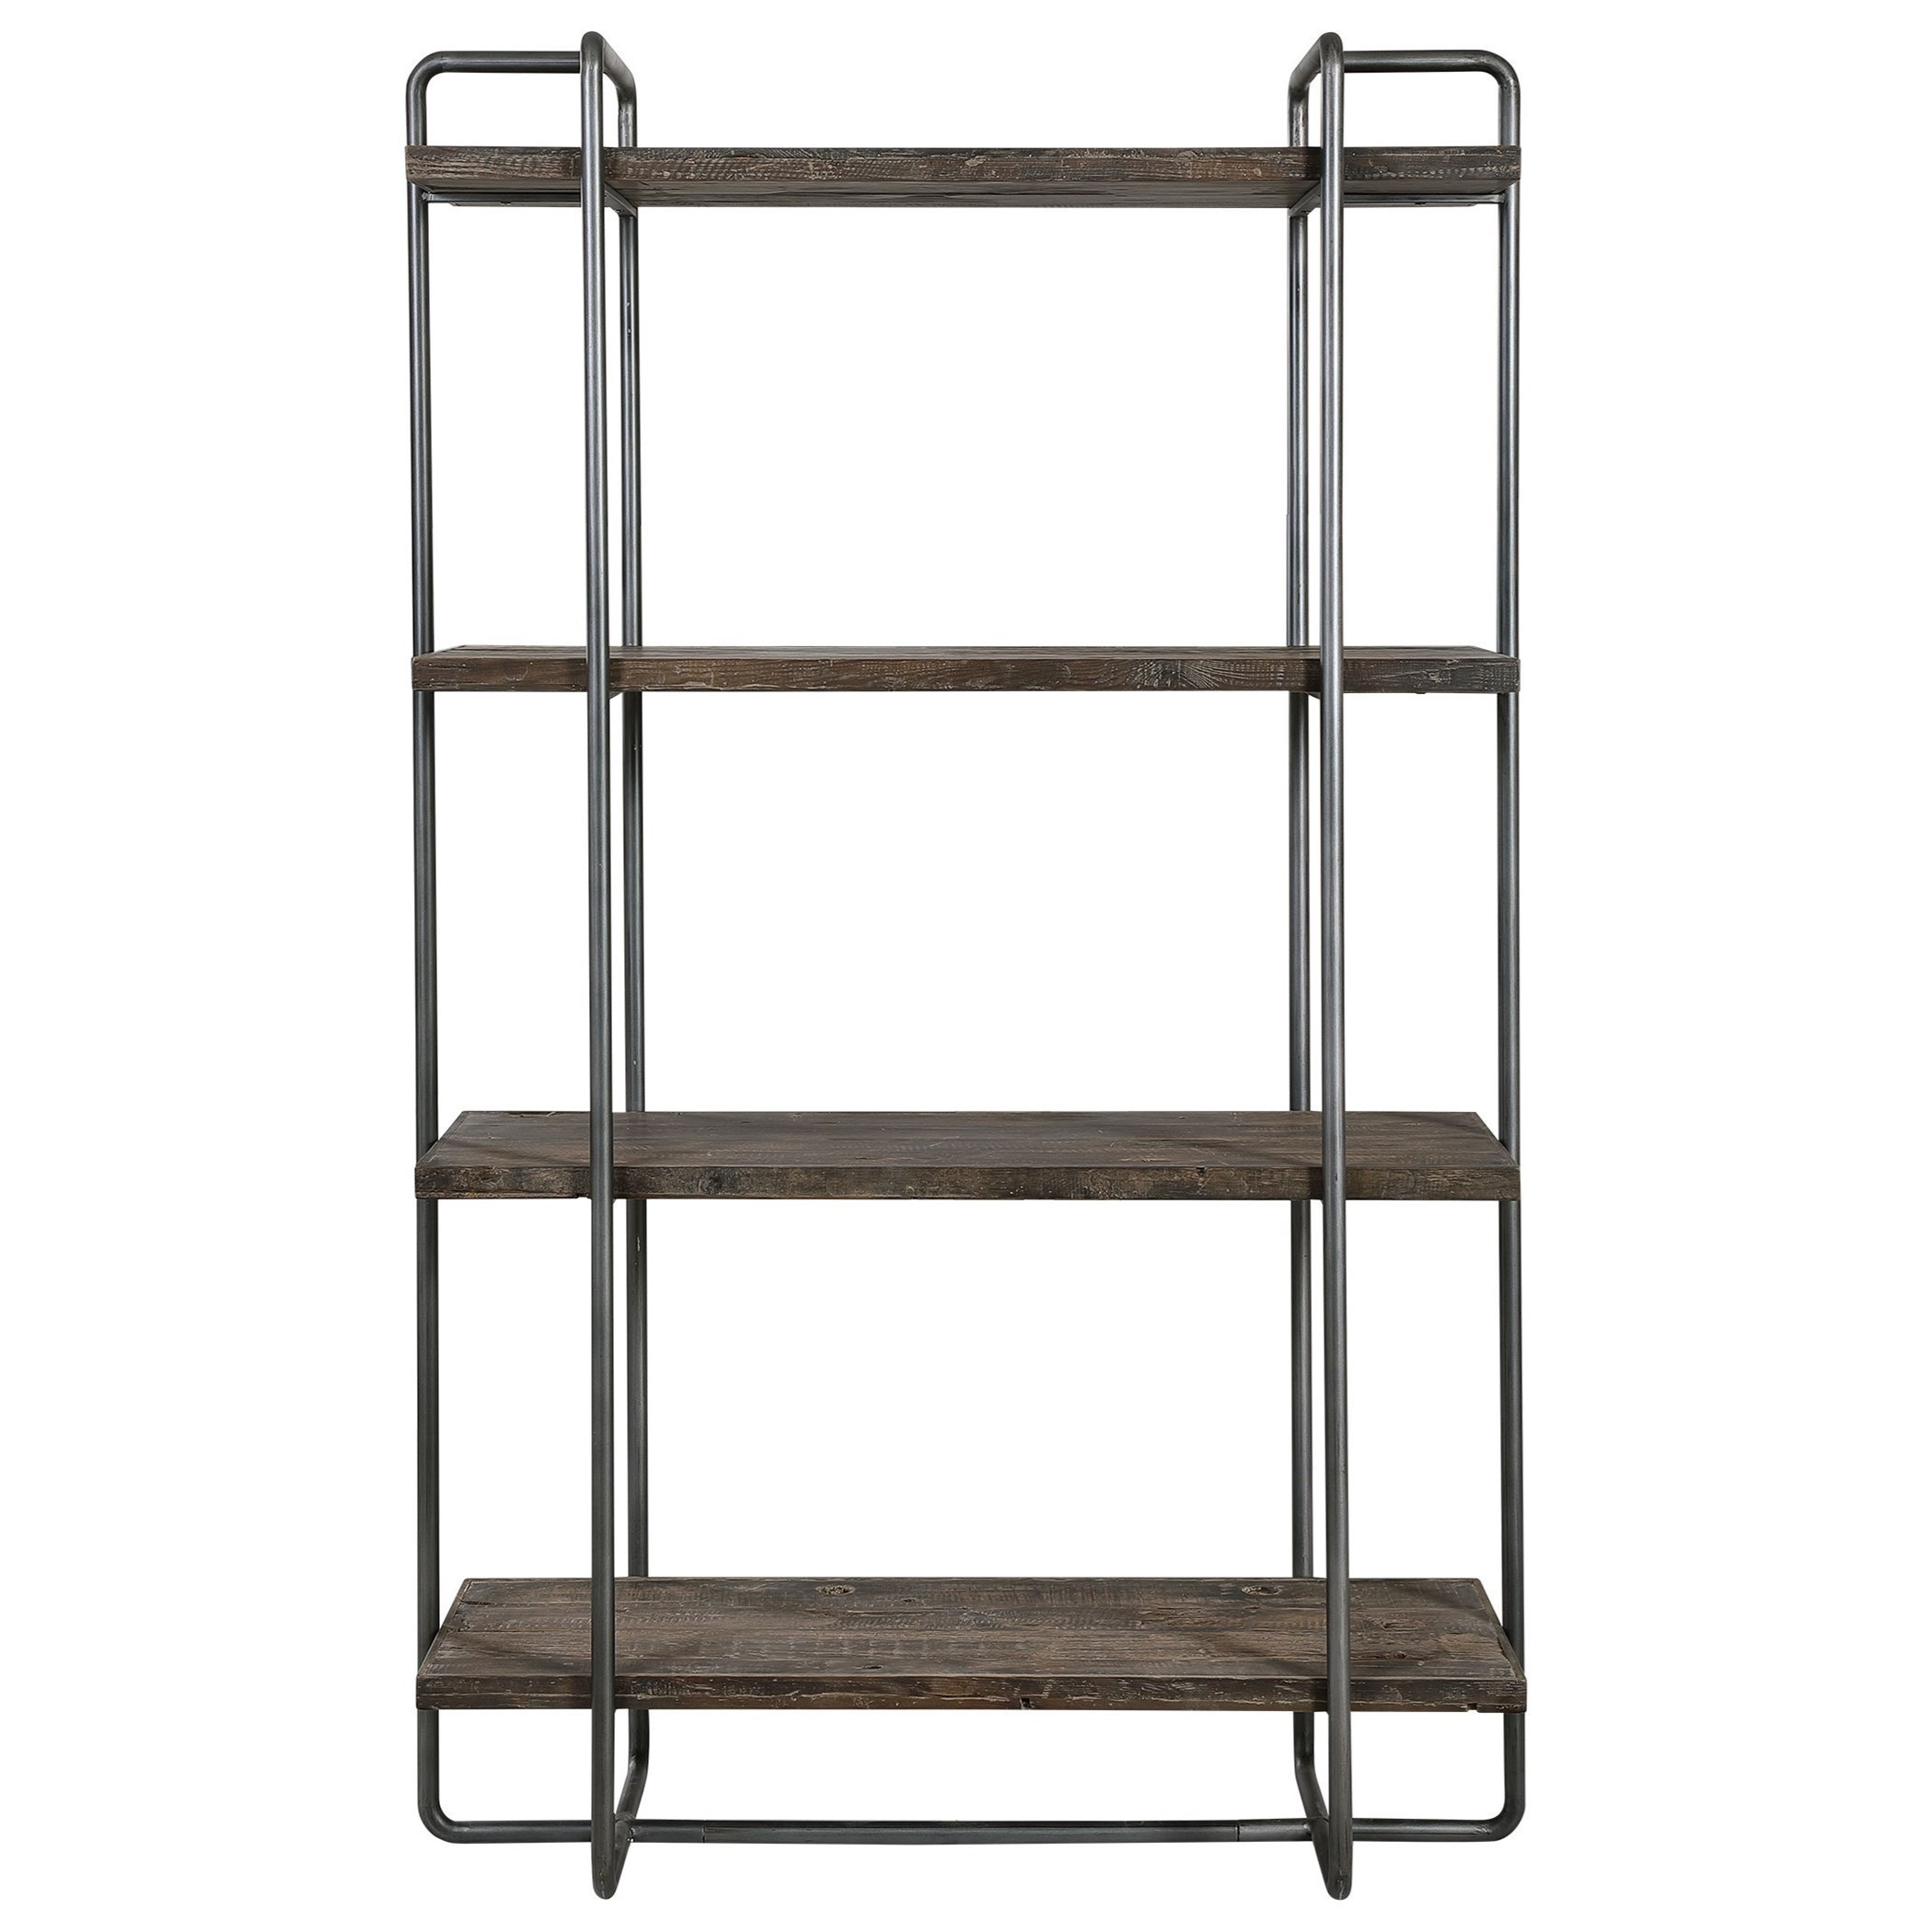 Accent Furniture - Bookcases Stilo Urban Industrial Etagere by Uttermost at Reid's Furniture